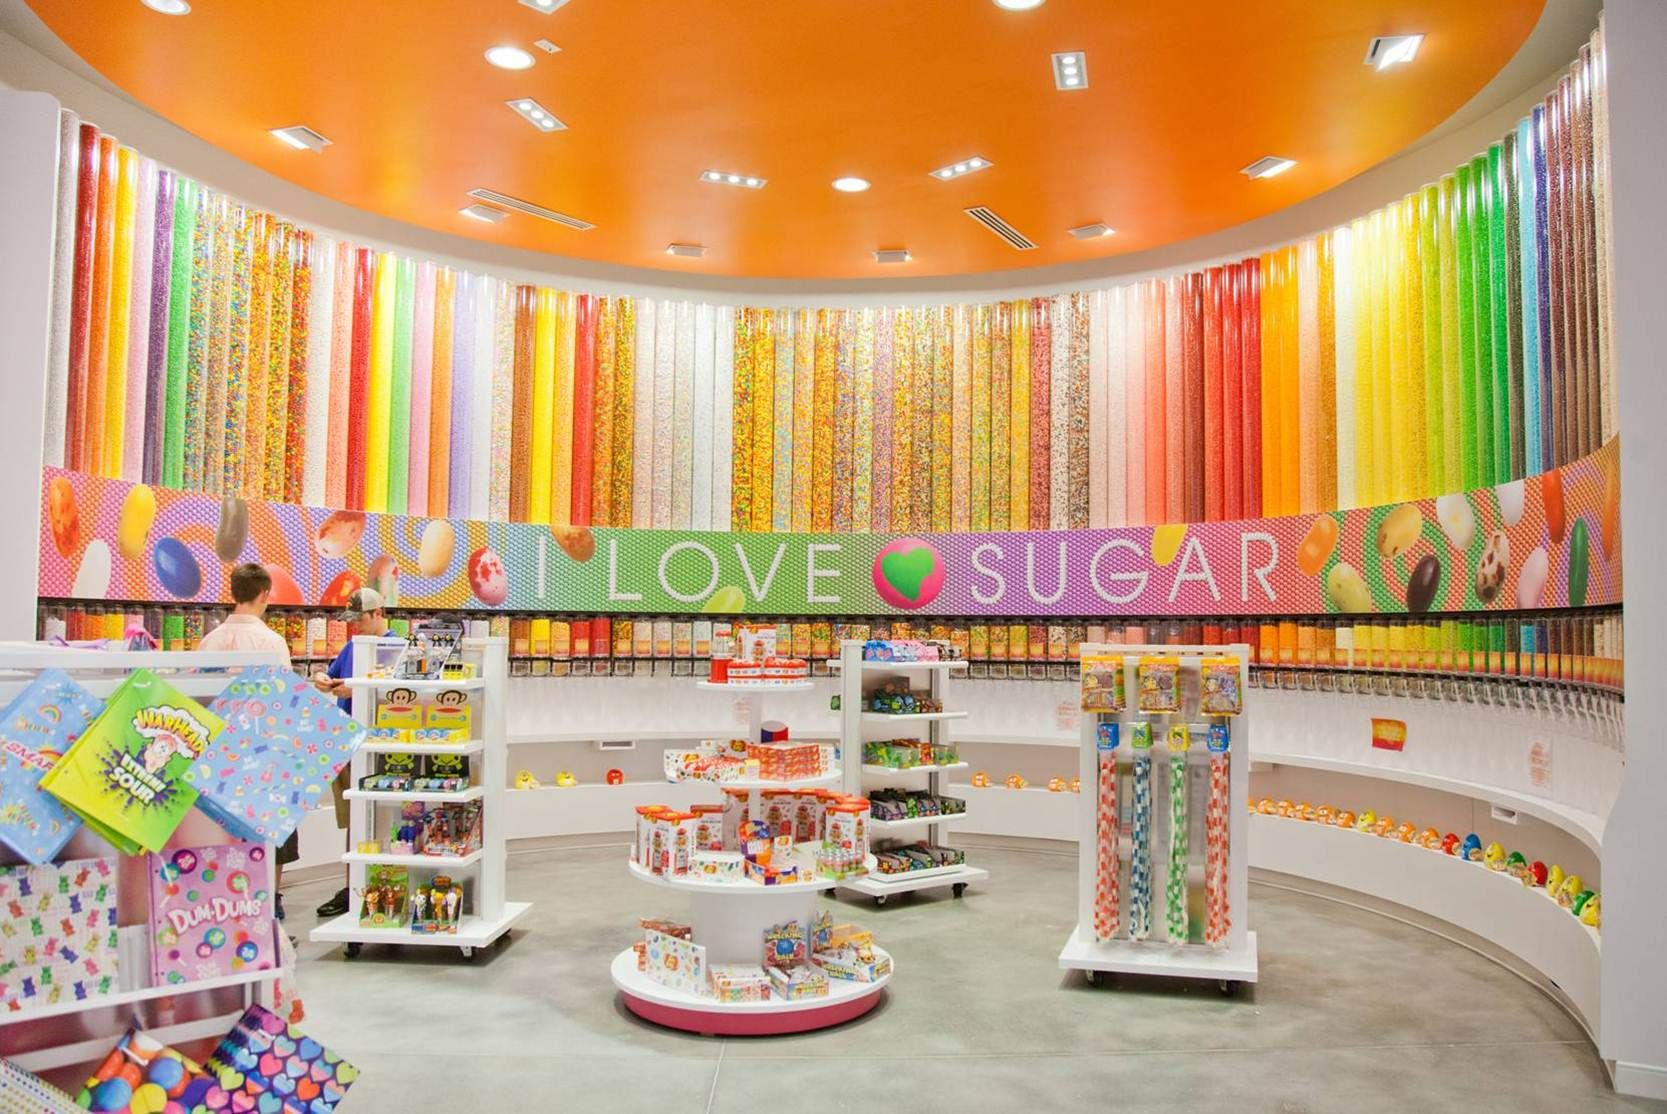 I Love Sugar Candy Just Opened Up In Myrtle Beach Sc This Is So Sweet And Features A Ton Of Sweetworks Color Wall